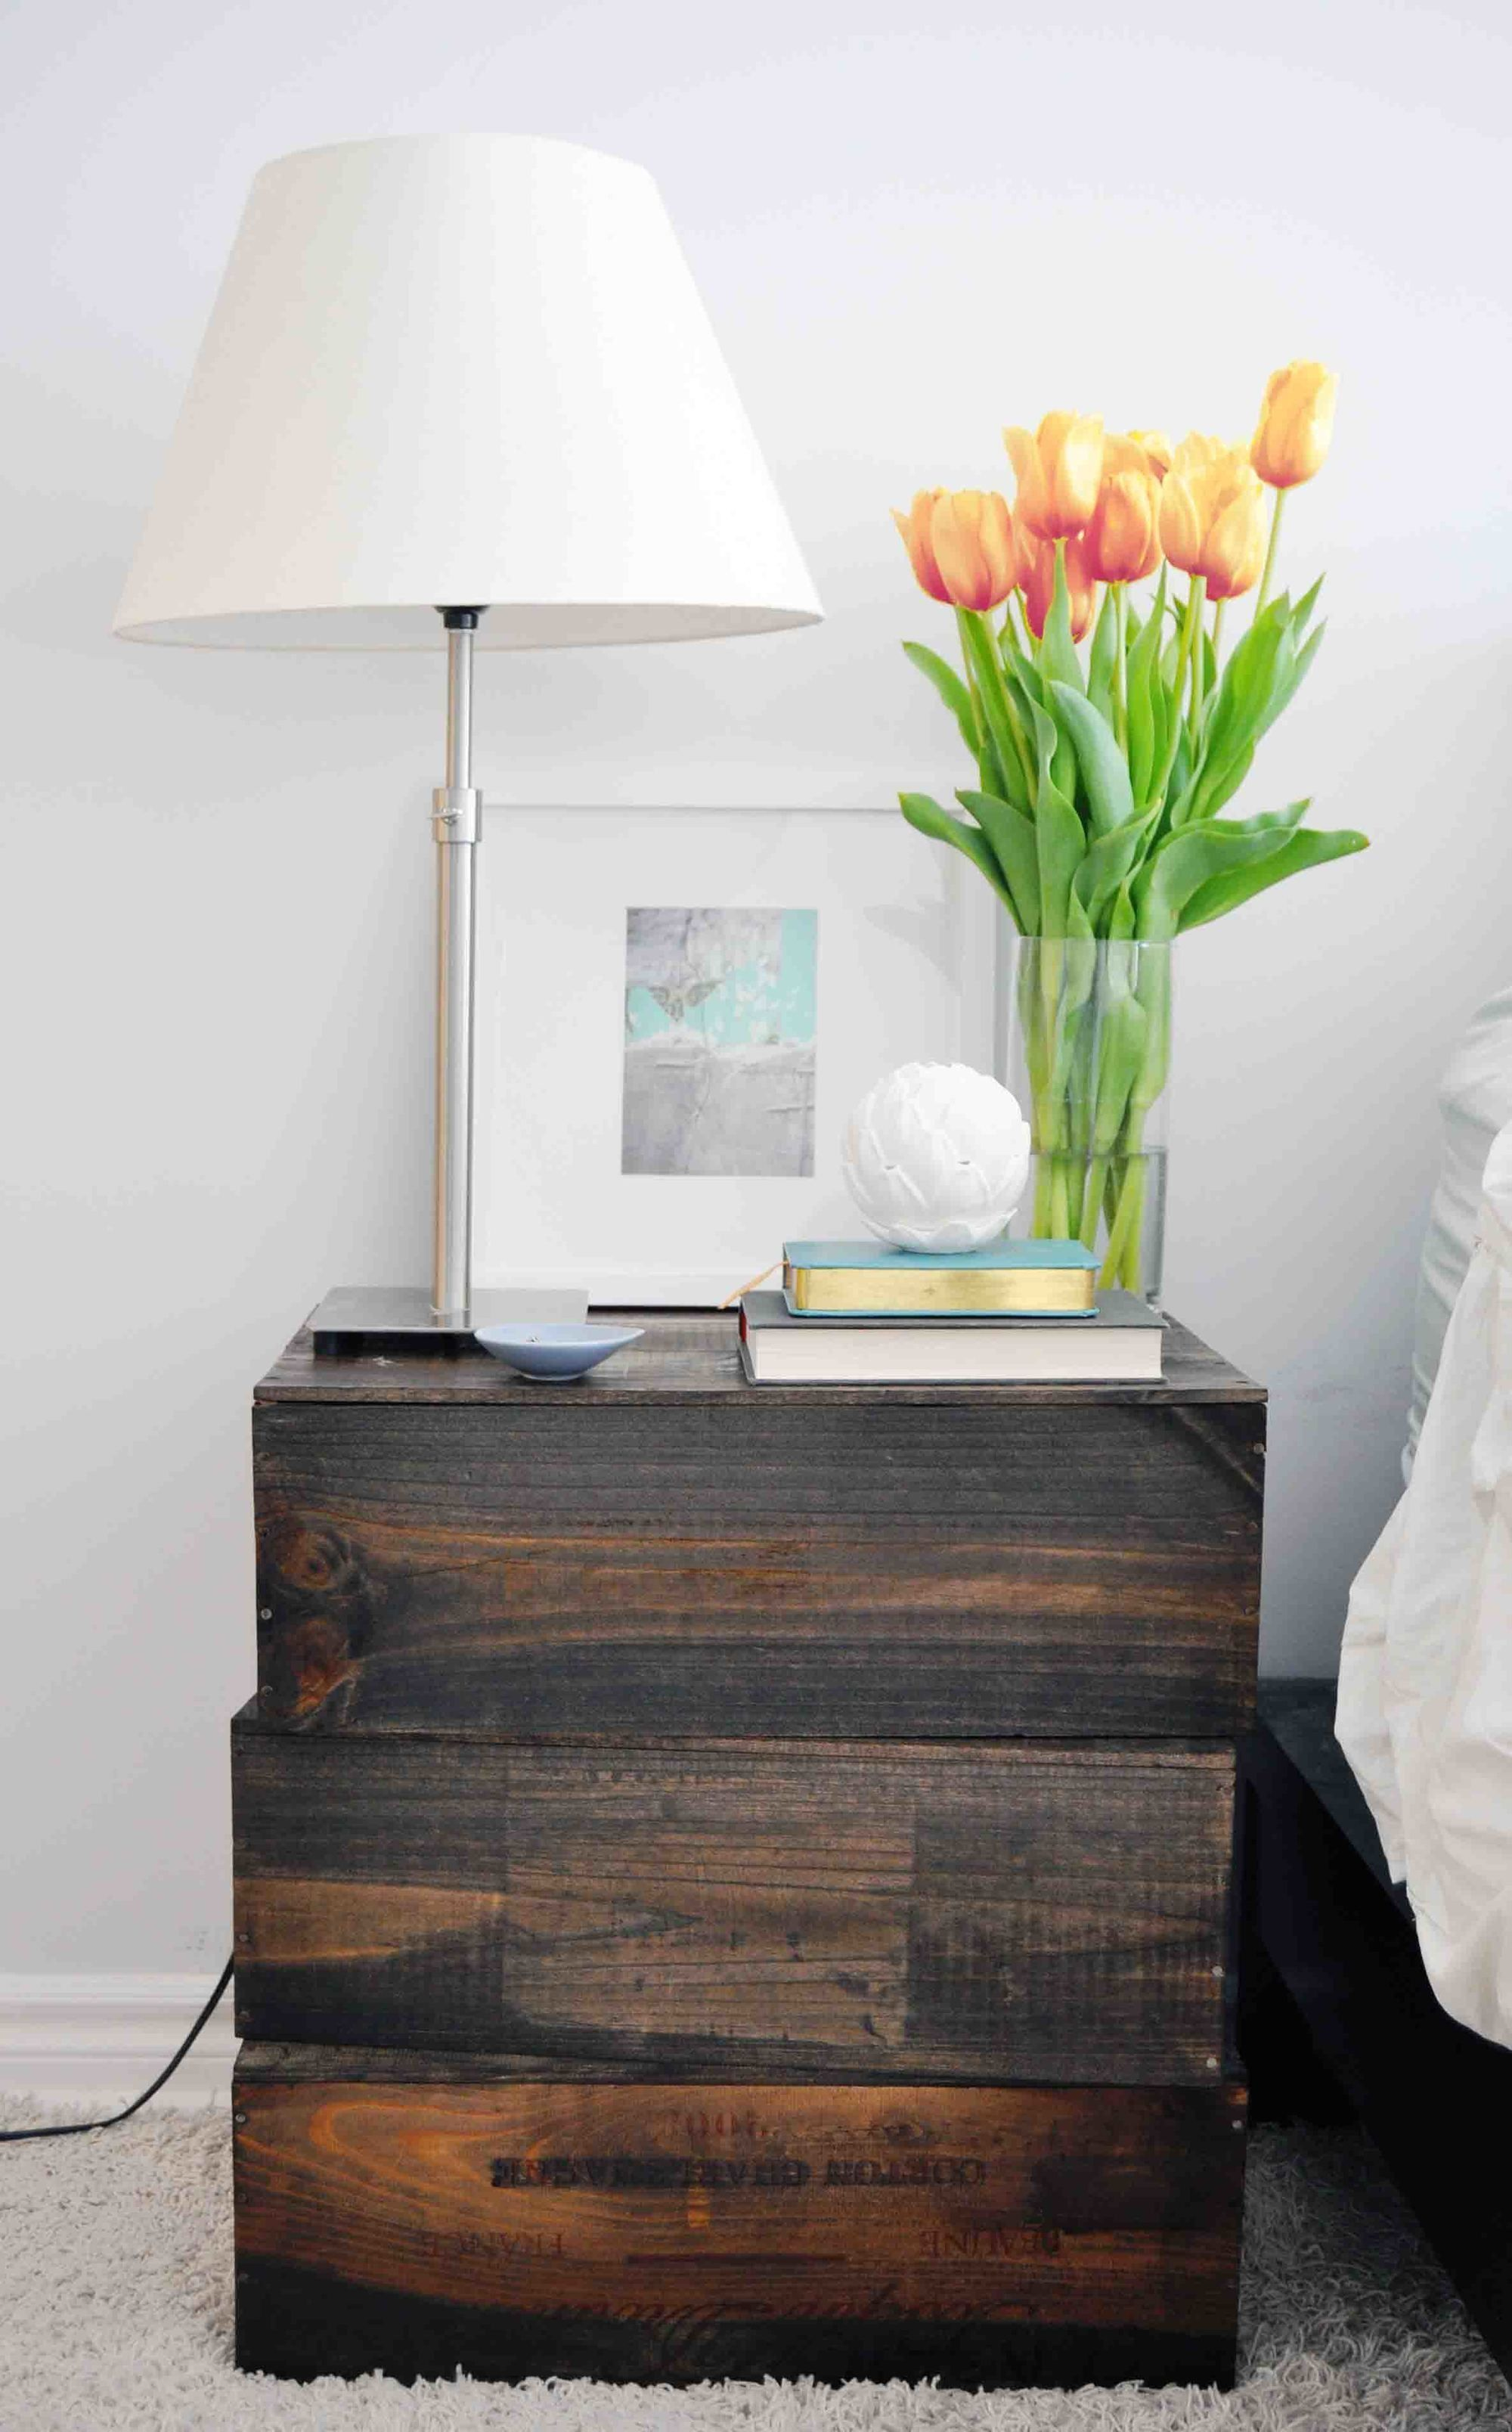 Repurpose old wine boxes into a rustic crate nightstand next to